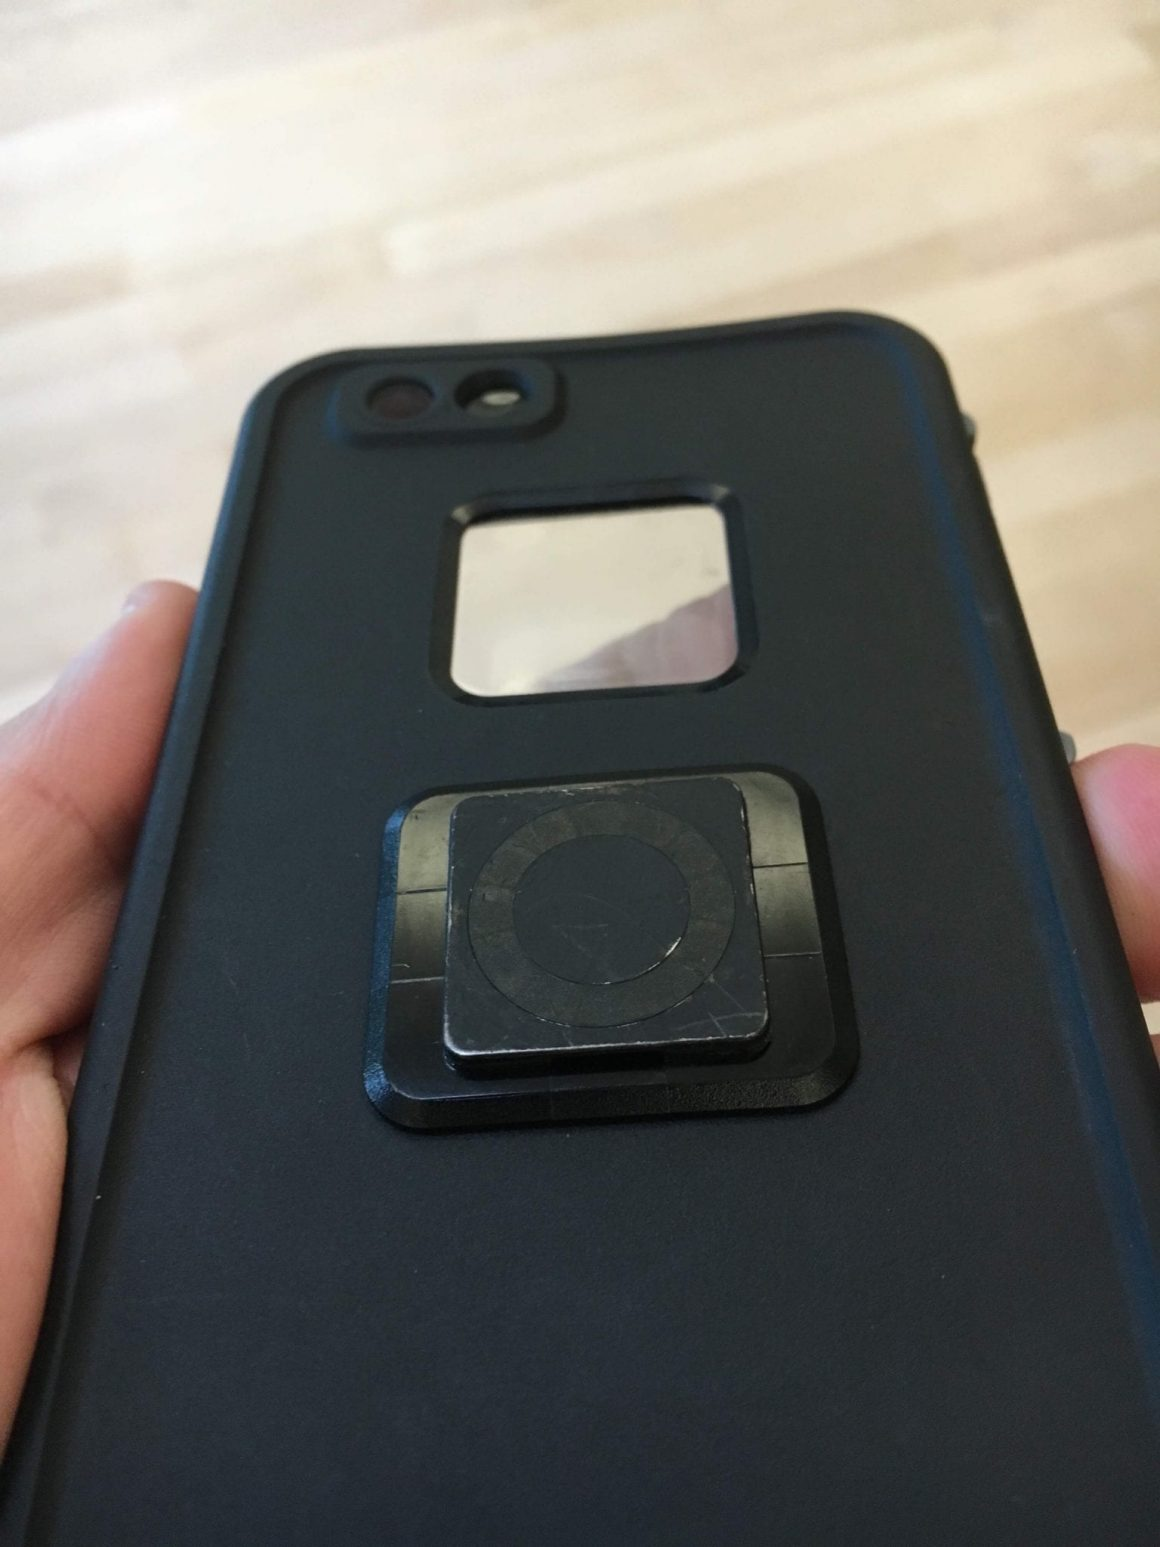 Lifeproof Arm Band Connector